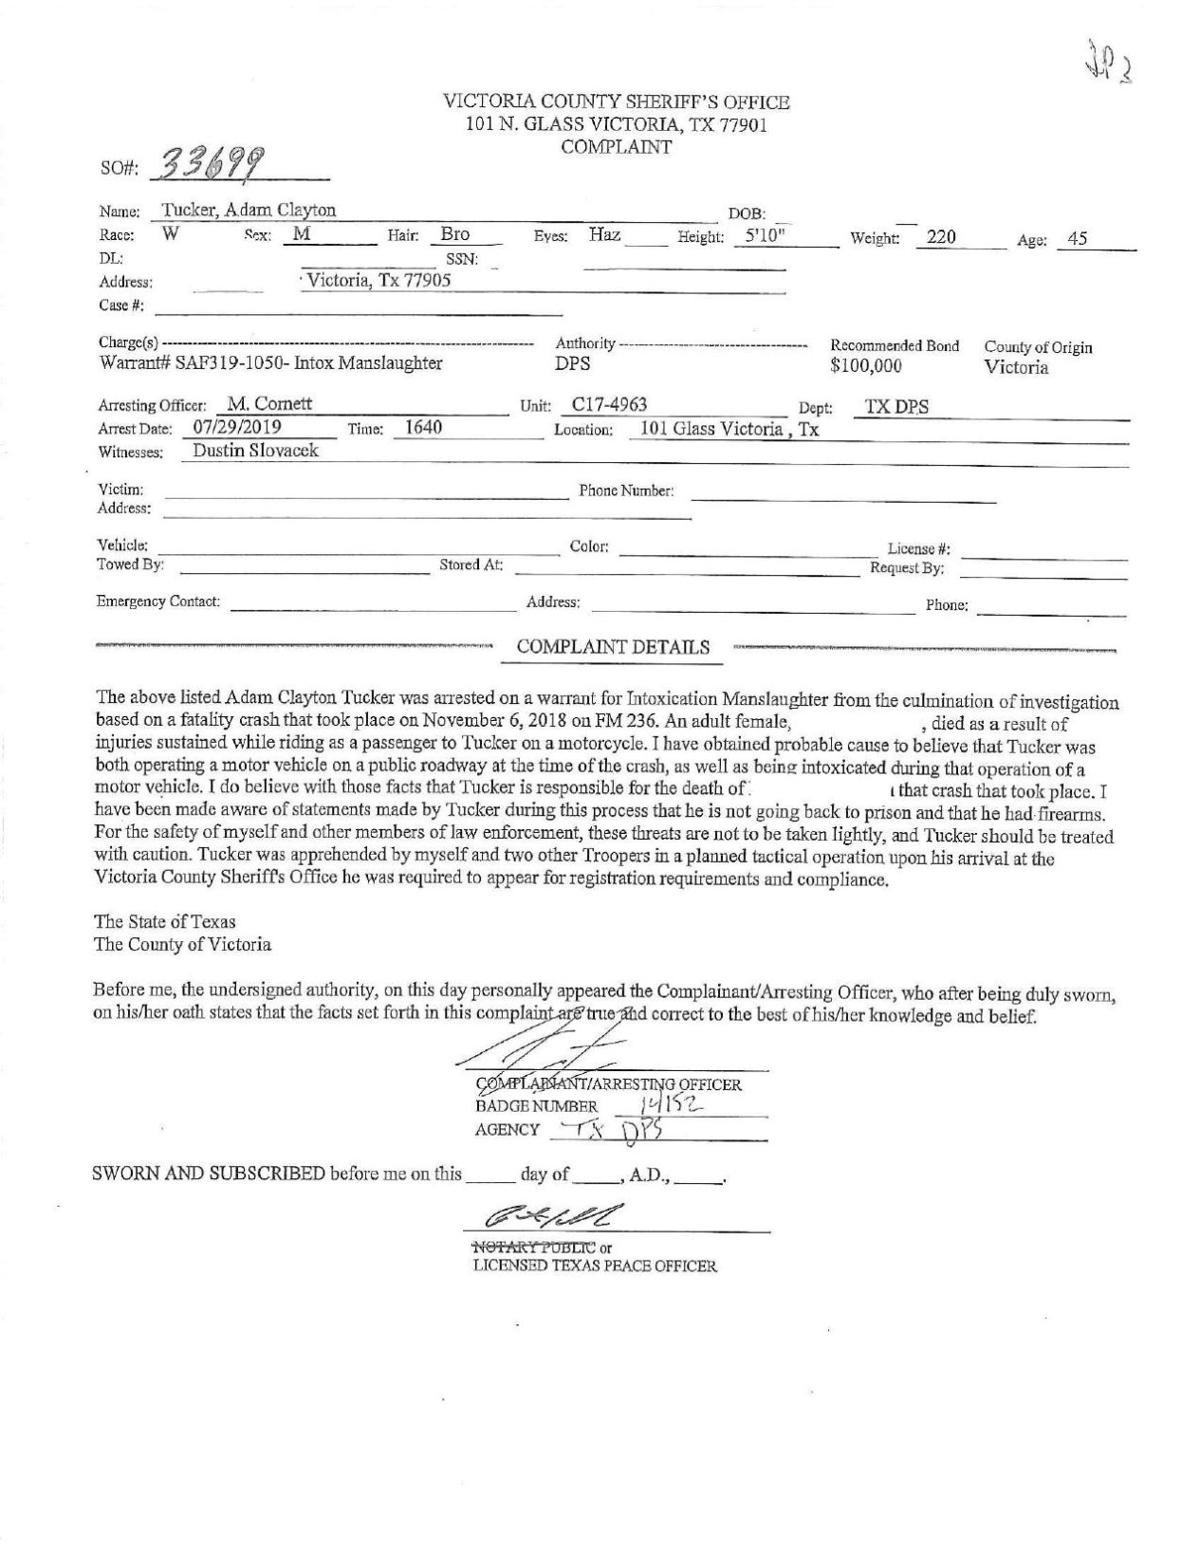 Warrant for Adam Clayton Tucker